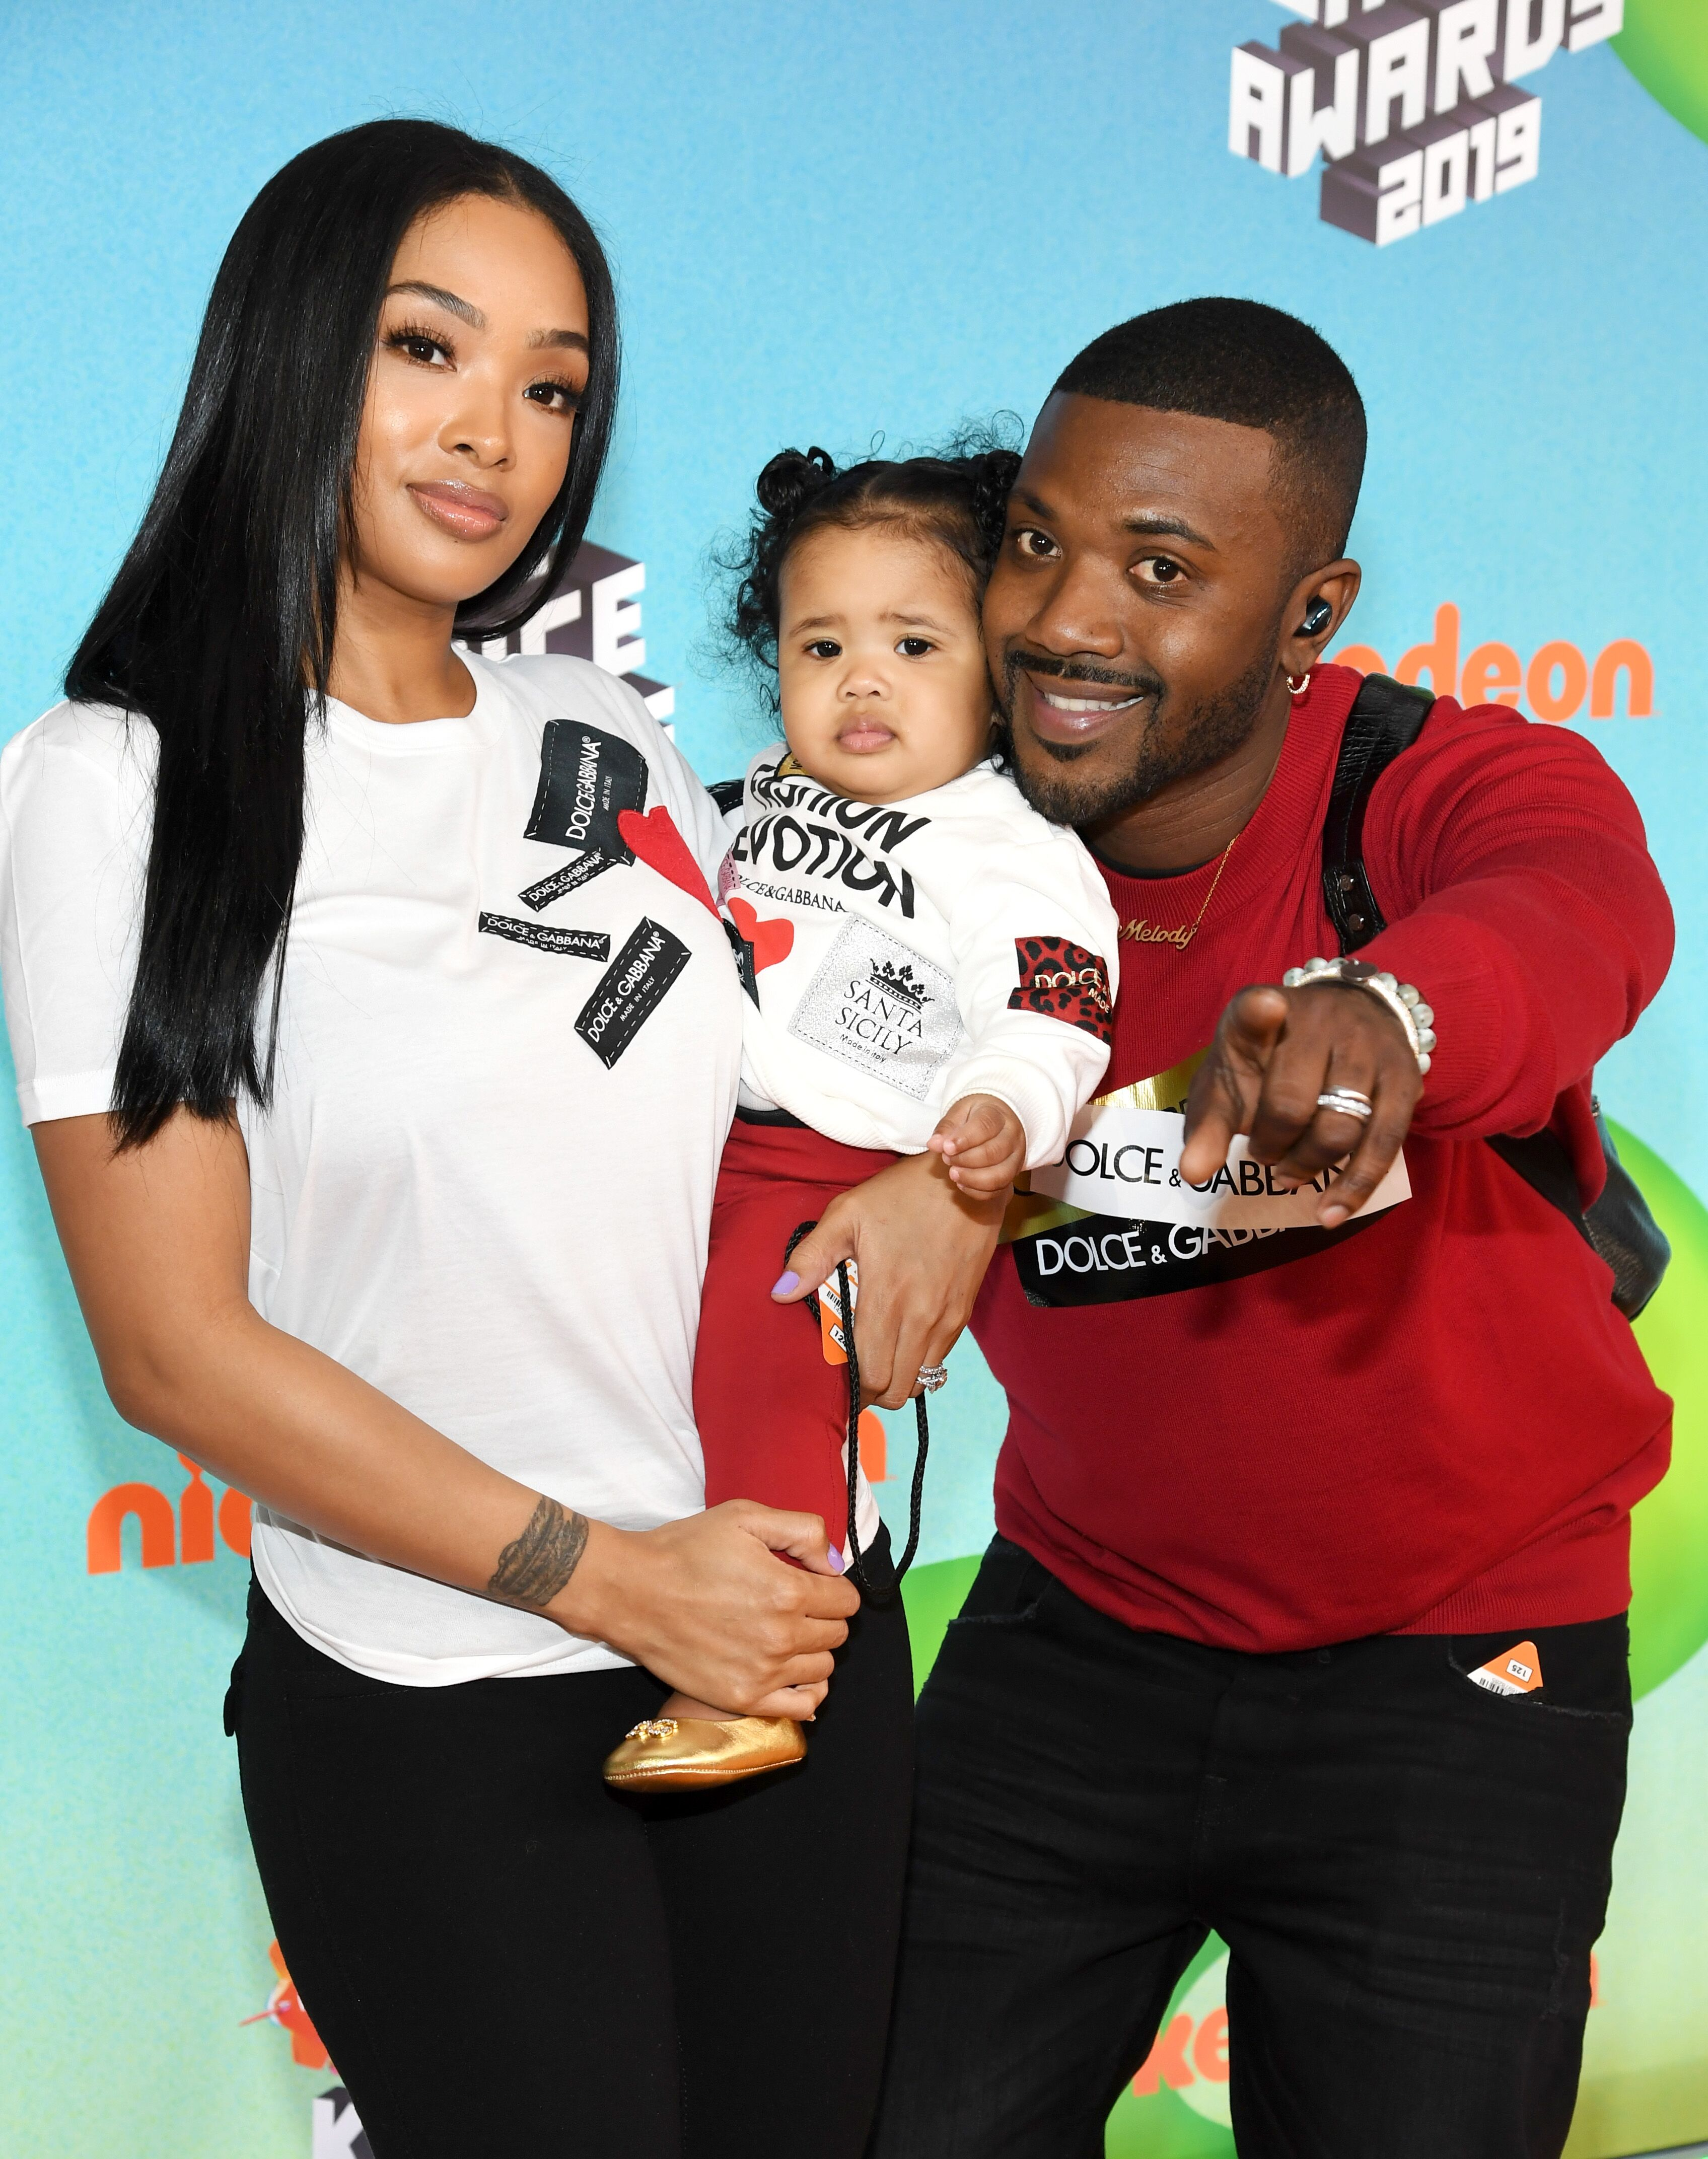 Rapper Ray J and his wife Princess Love with daughter Melody at Nickelodeon premiere/ Source: Getty Images